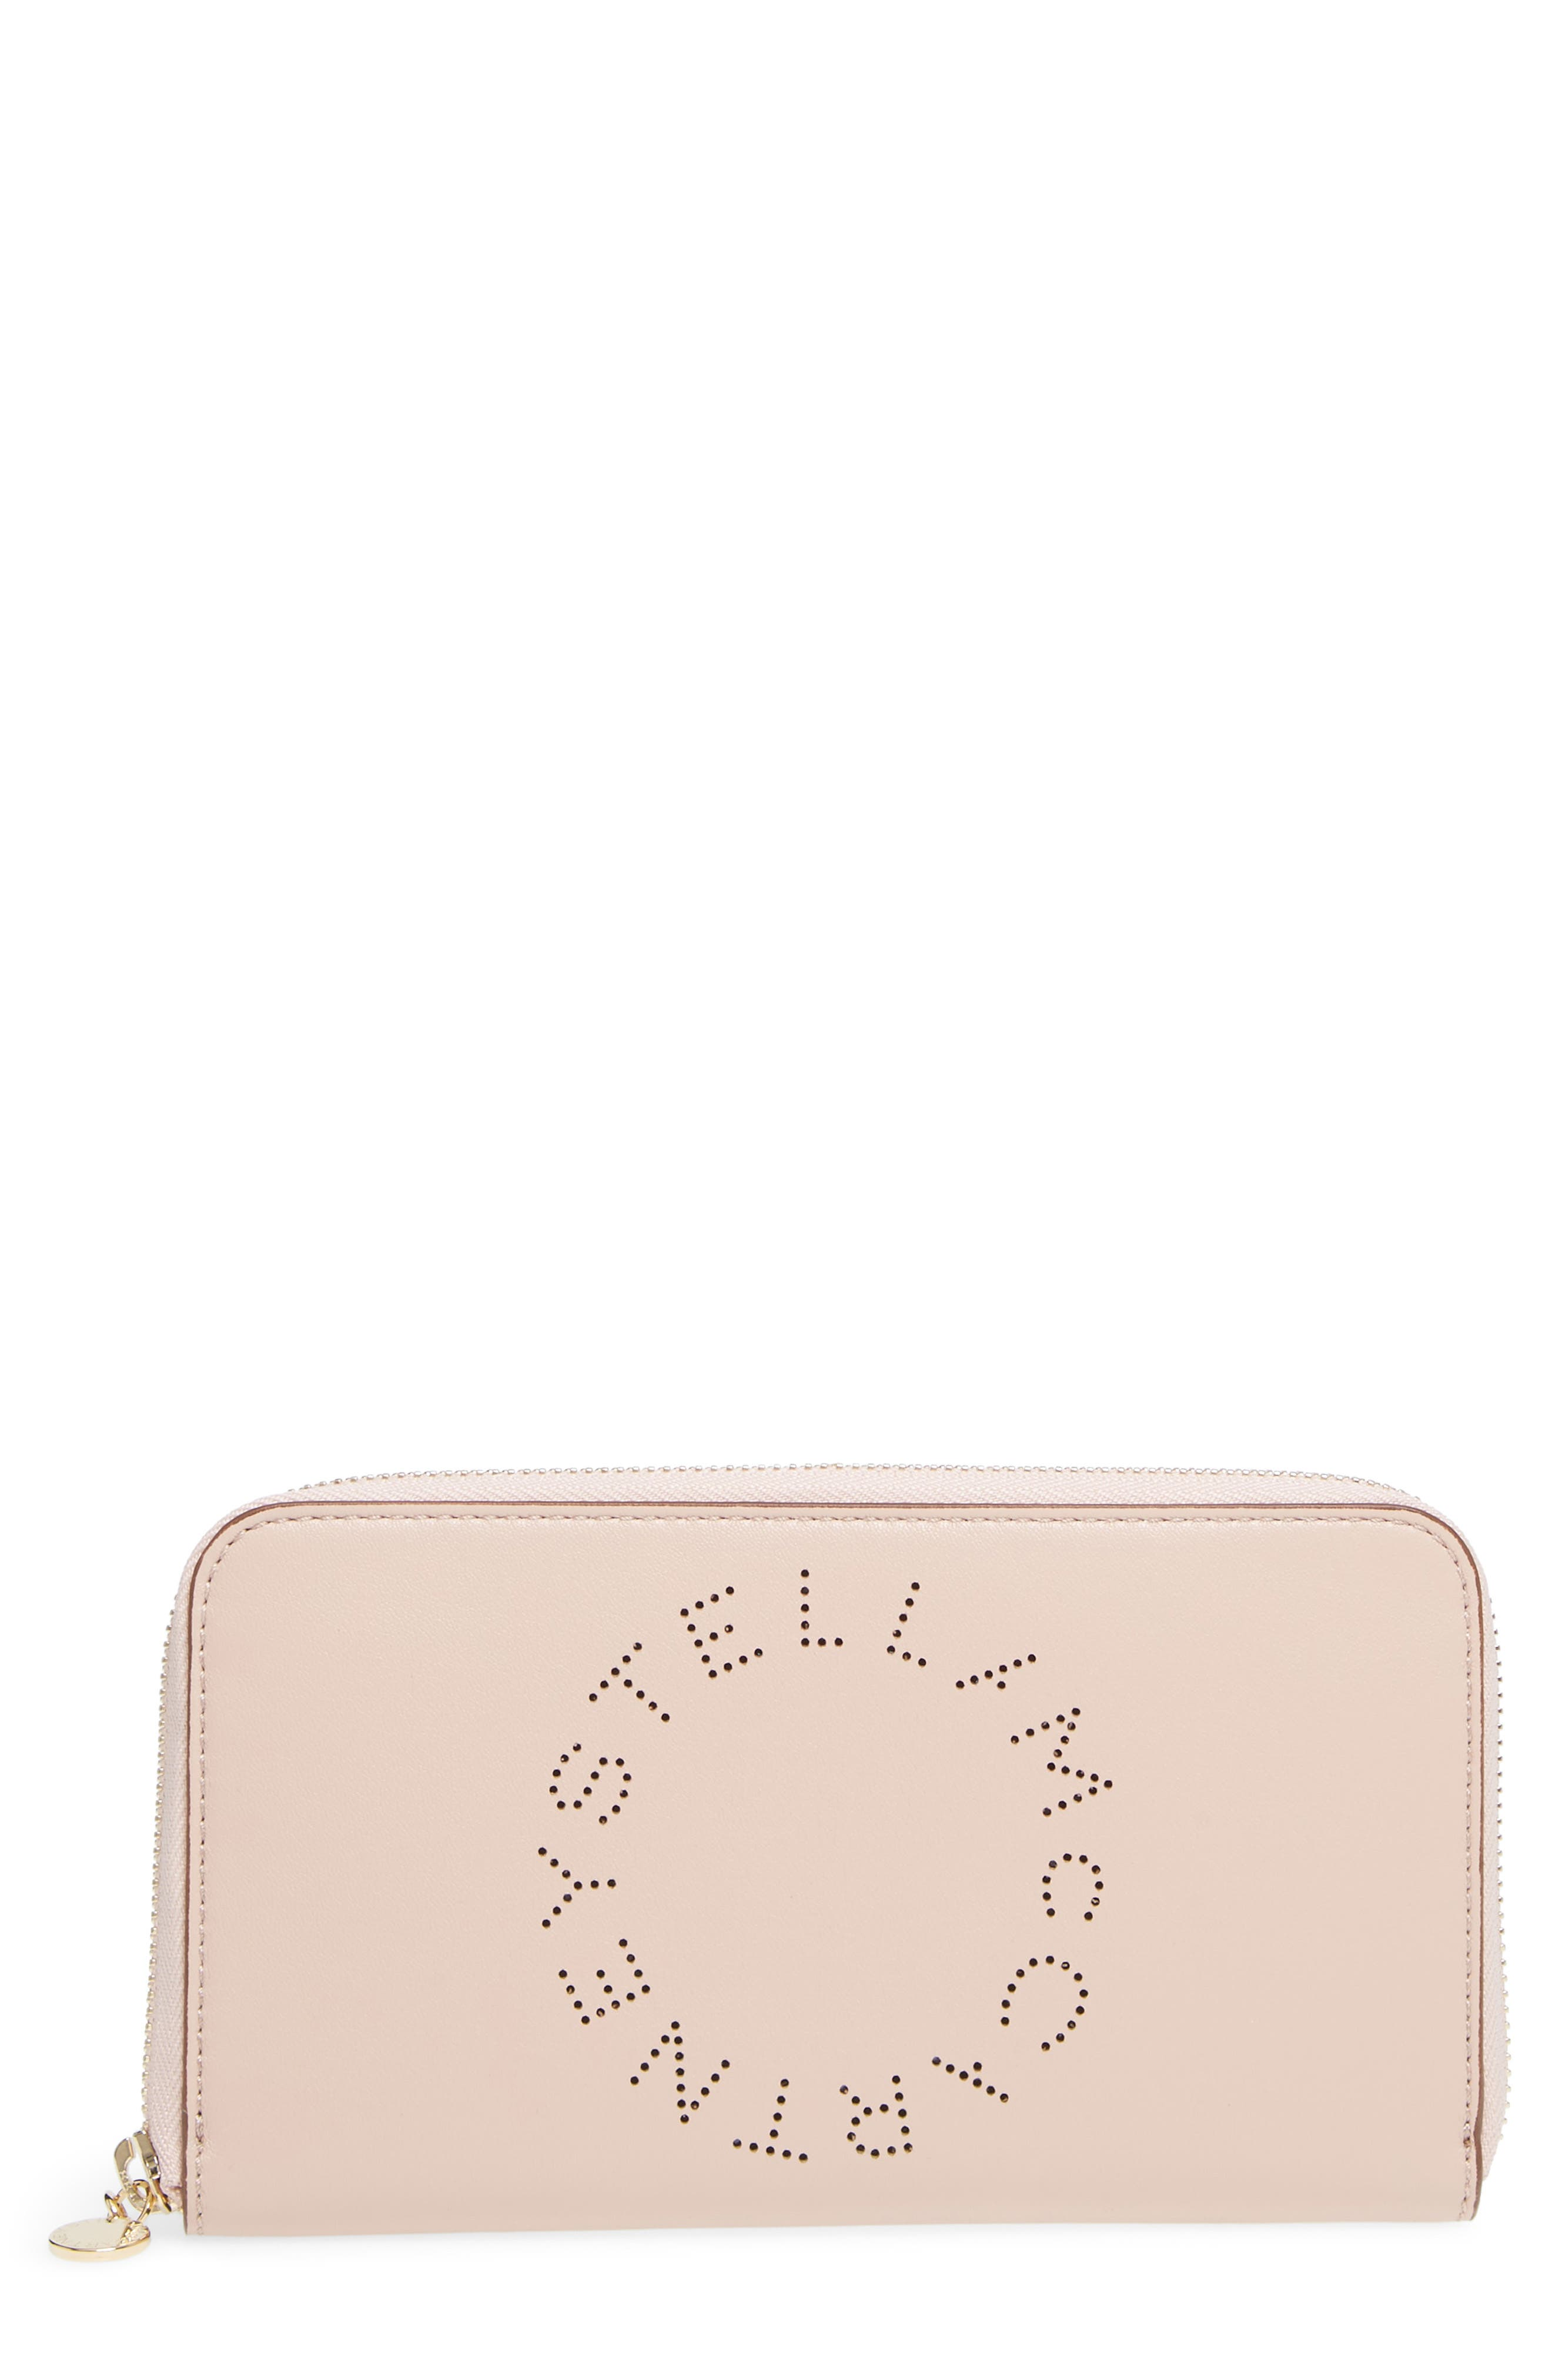 Alternate Image 1 Selected - Stella McCartney Alter Nappa Perforated Logo Faux Leather Wallet